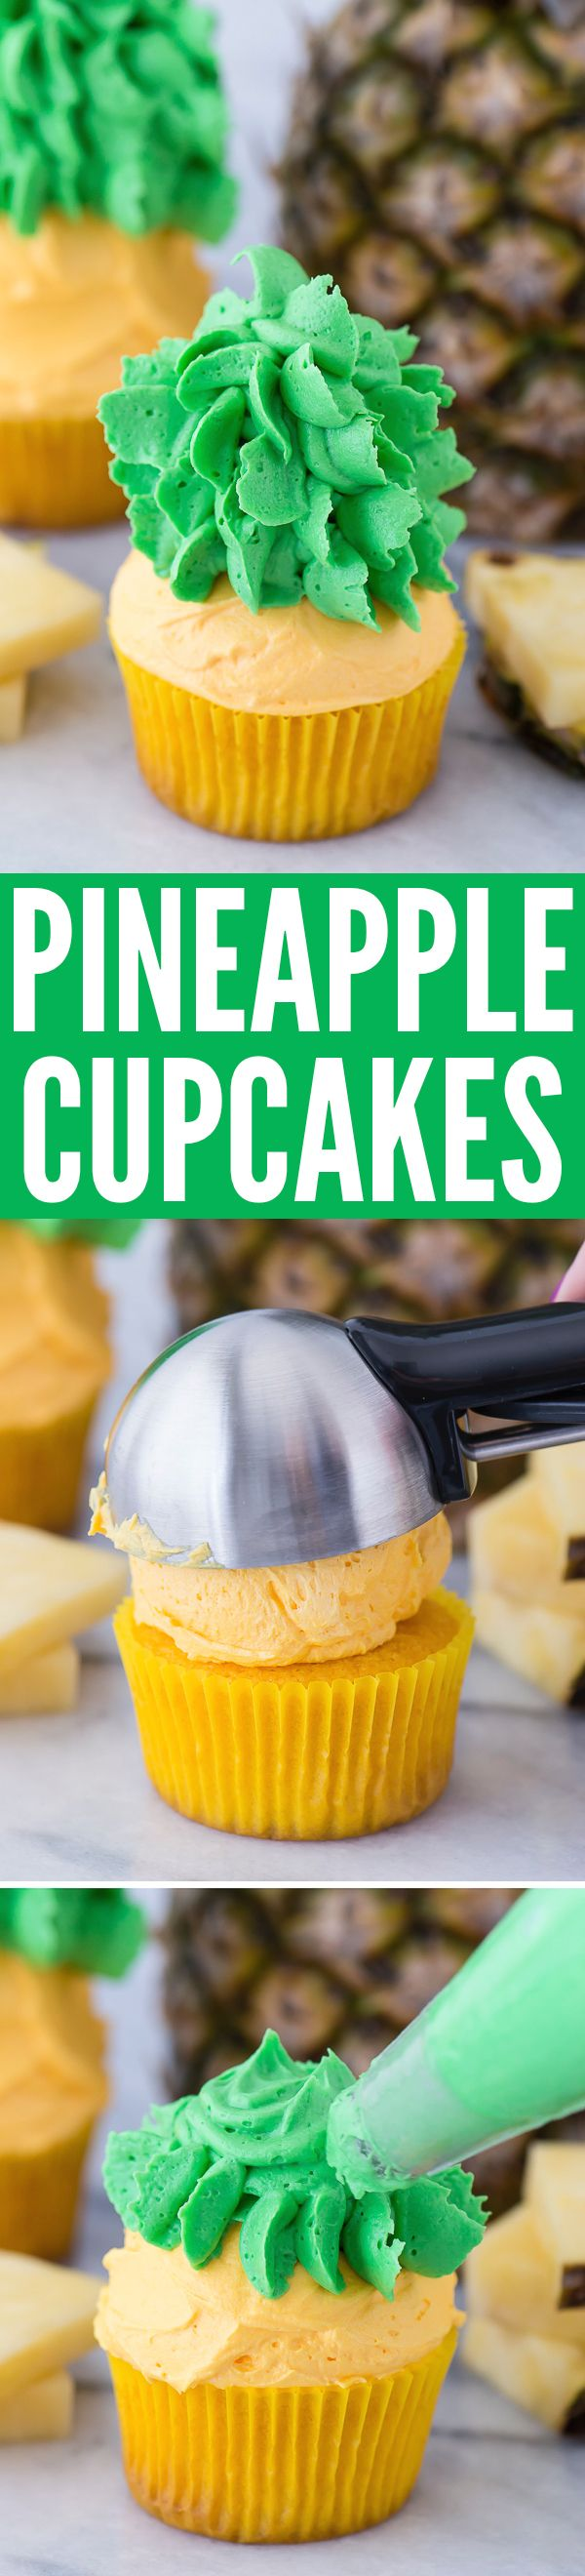 Pineapple cupcakes - cupcakes that look like PINEAPPLES! The buttercream tastes like pineapple too!